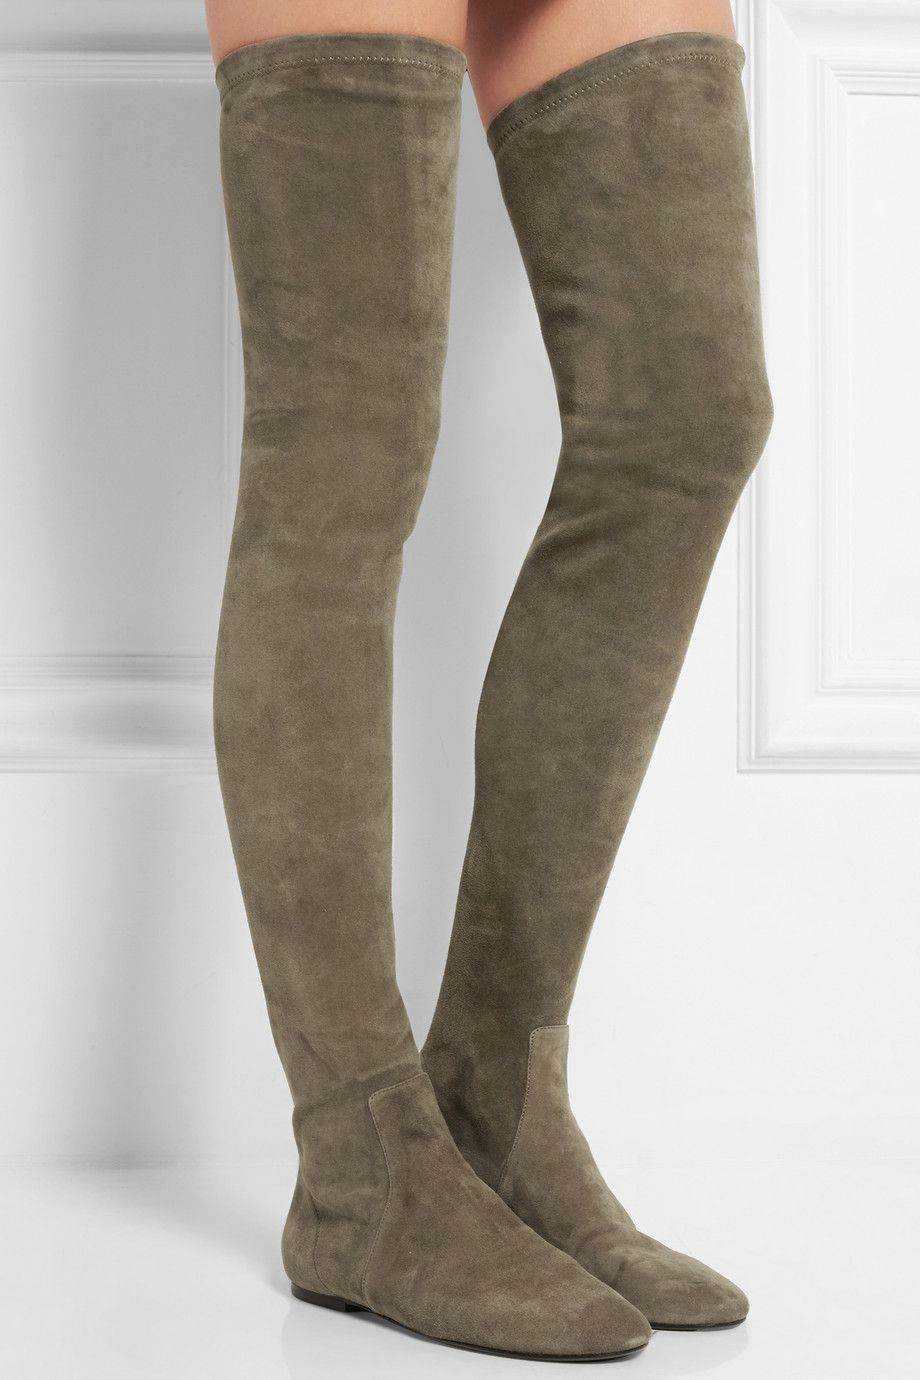 quality free shipping outlet fake sale online Isabel Marant Suede Over-The-Knee Boots free shipping deals wpIShvJ